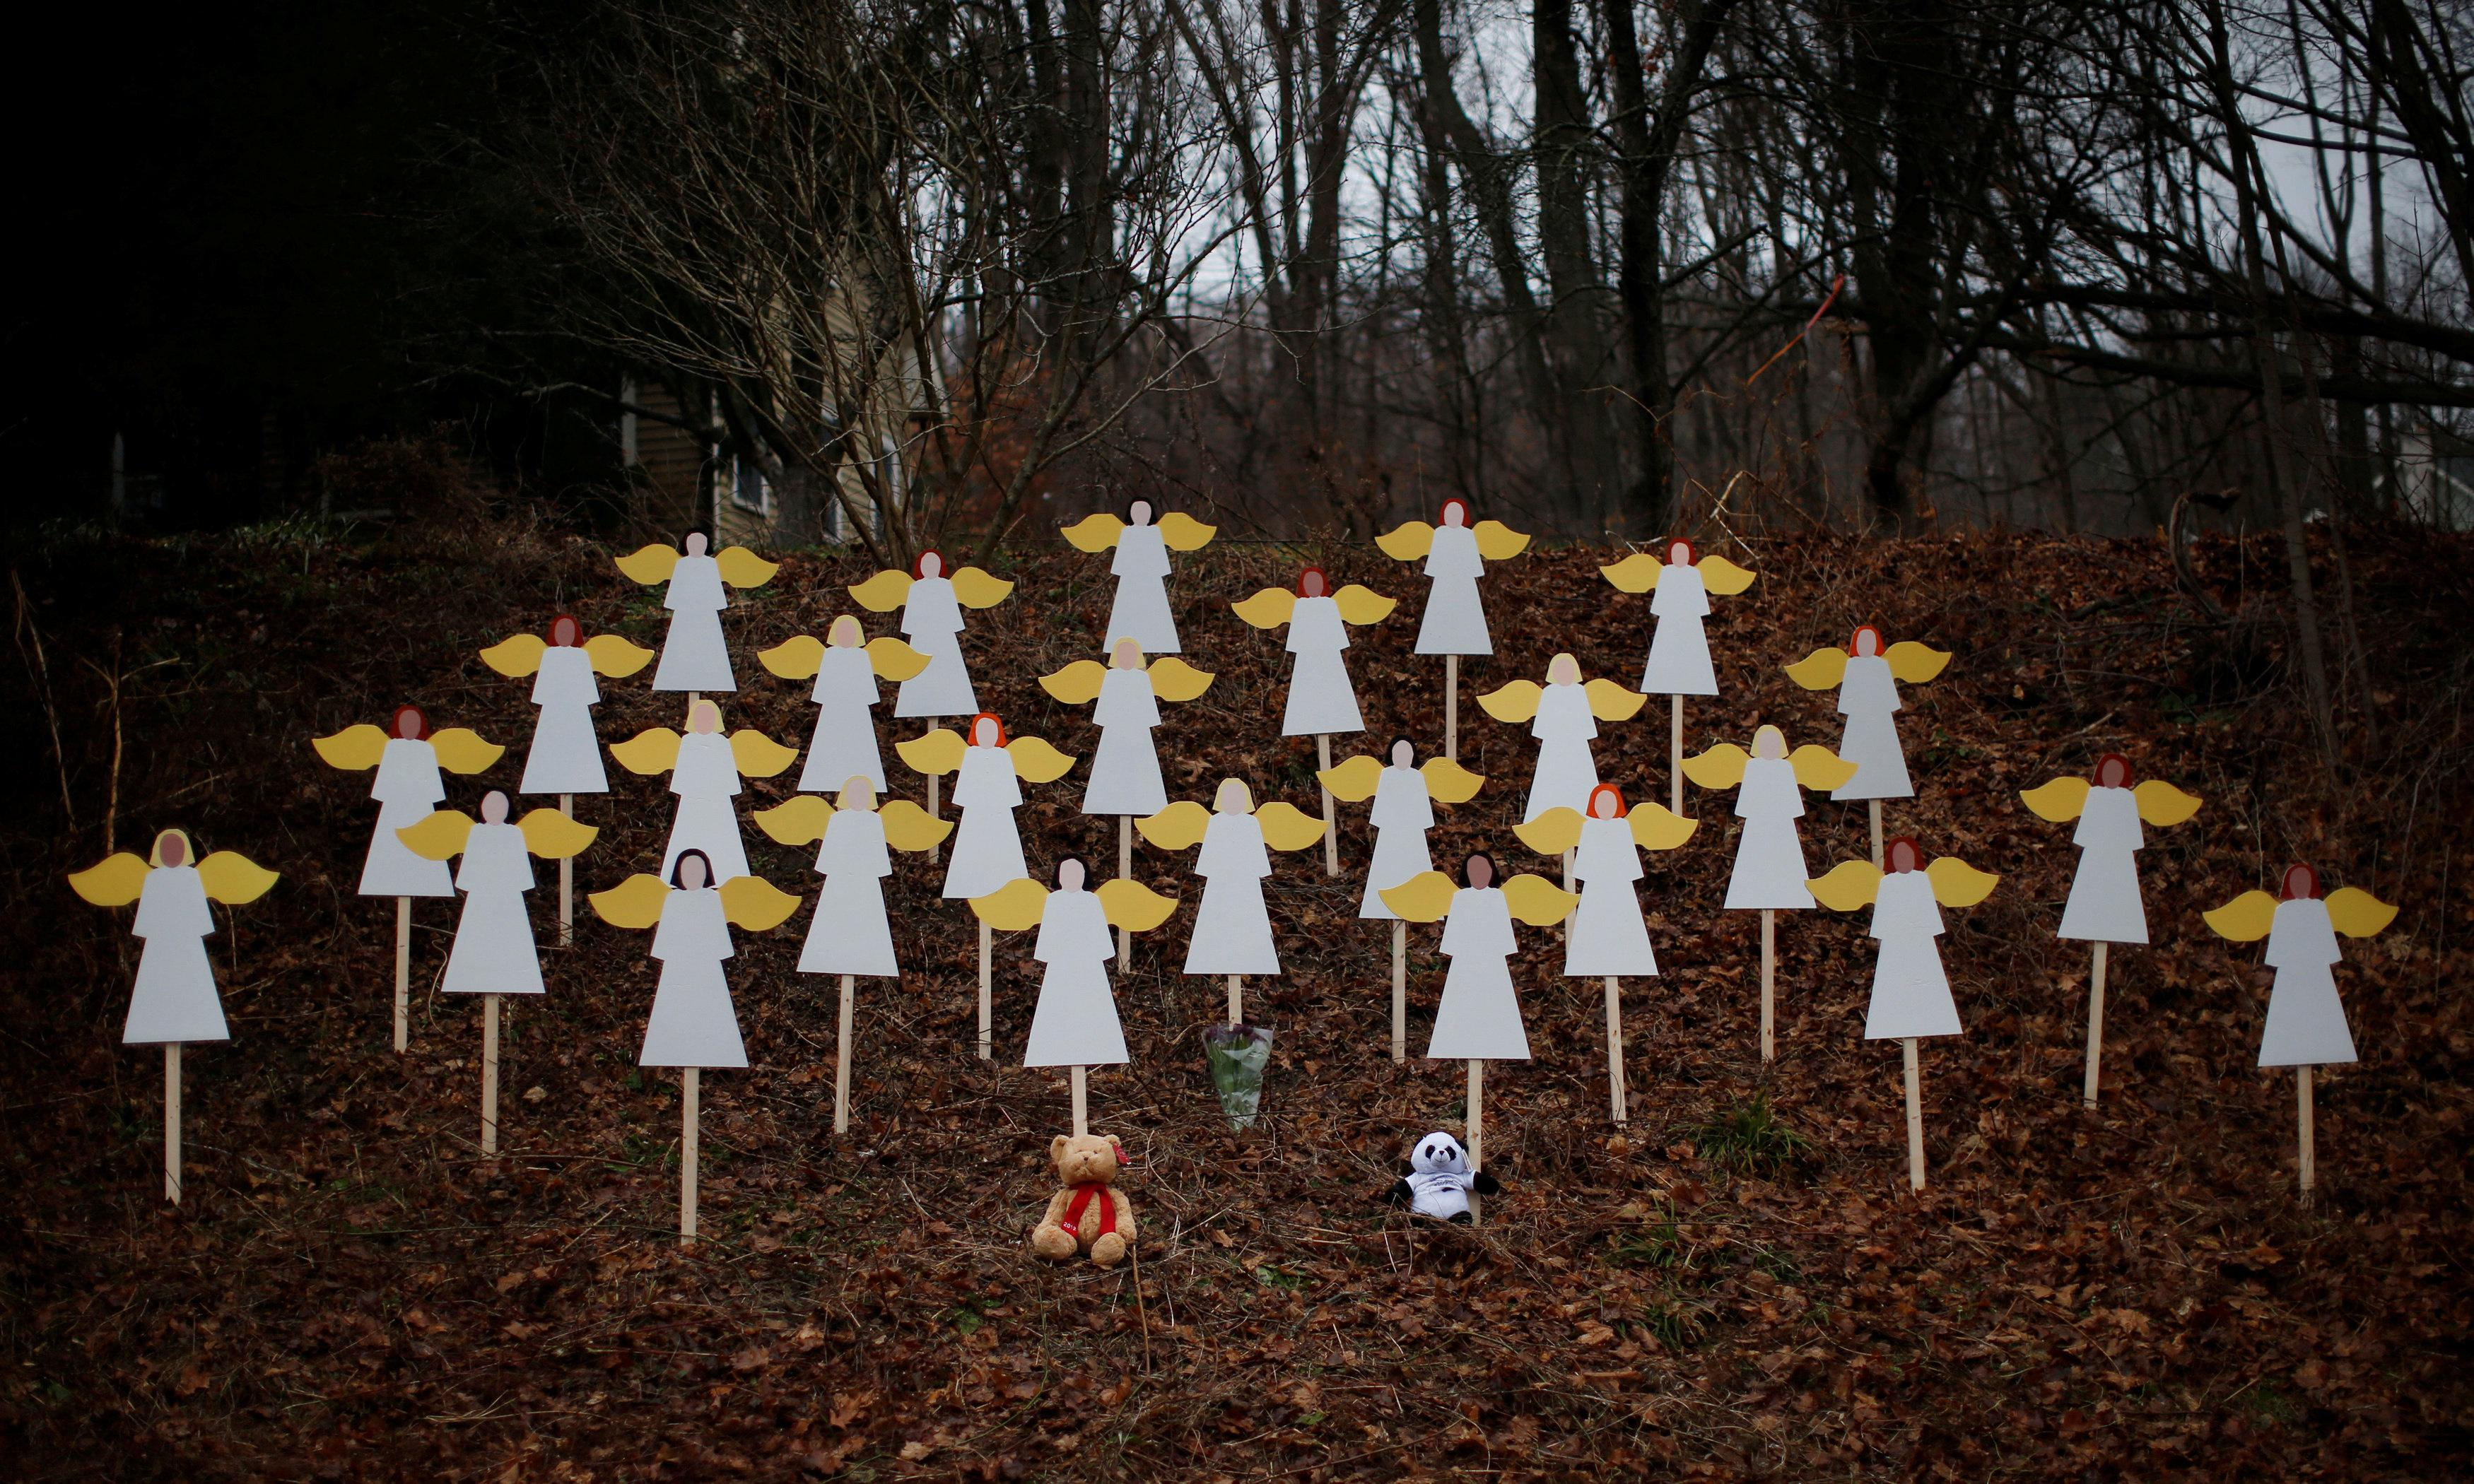 Father of Sandy Hook victim has killed himself, police say